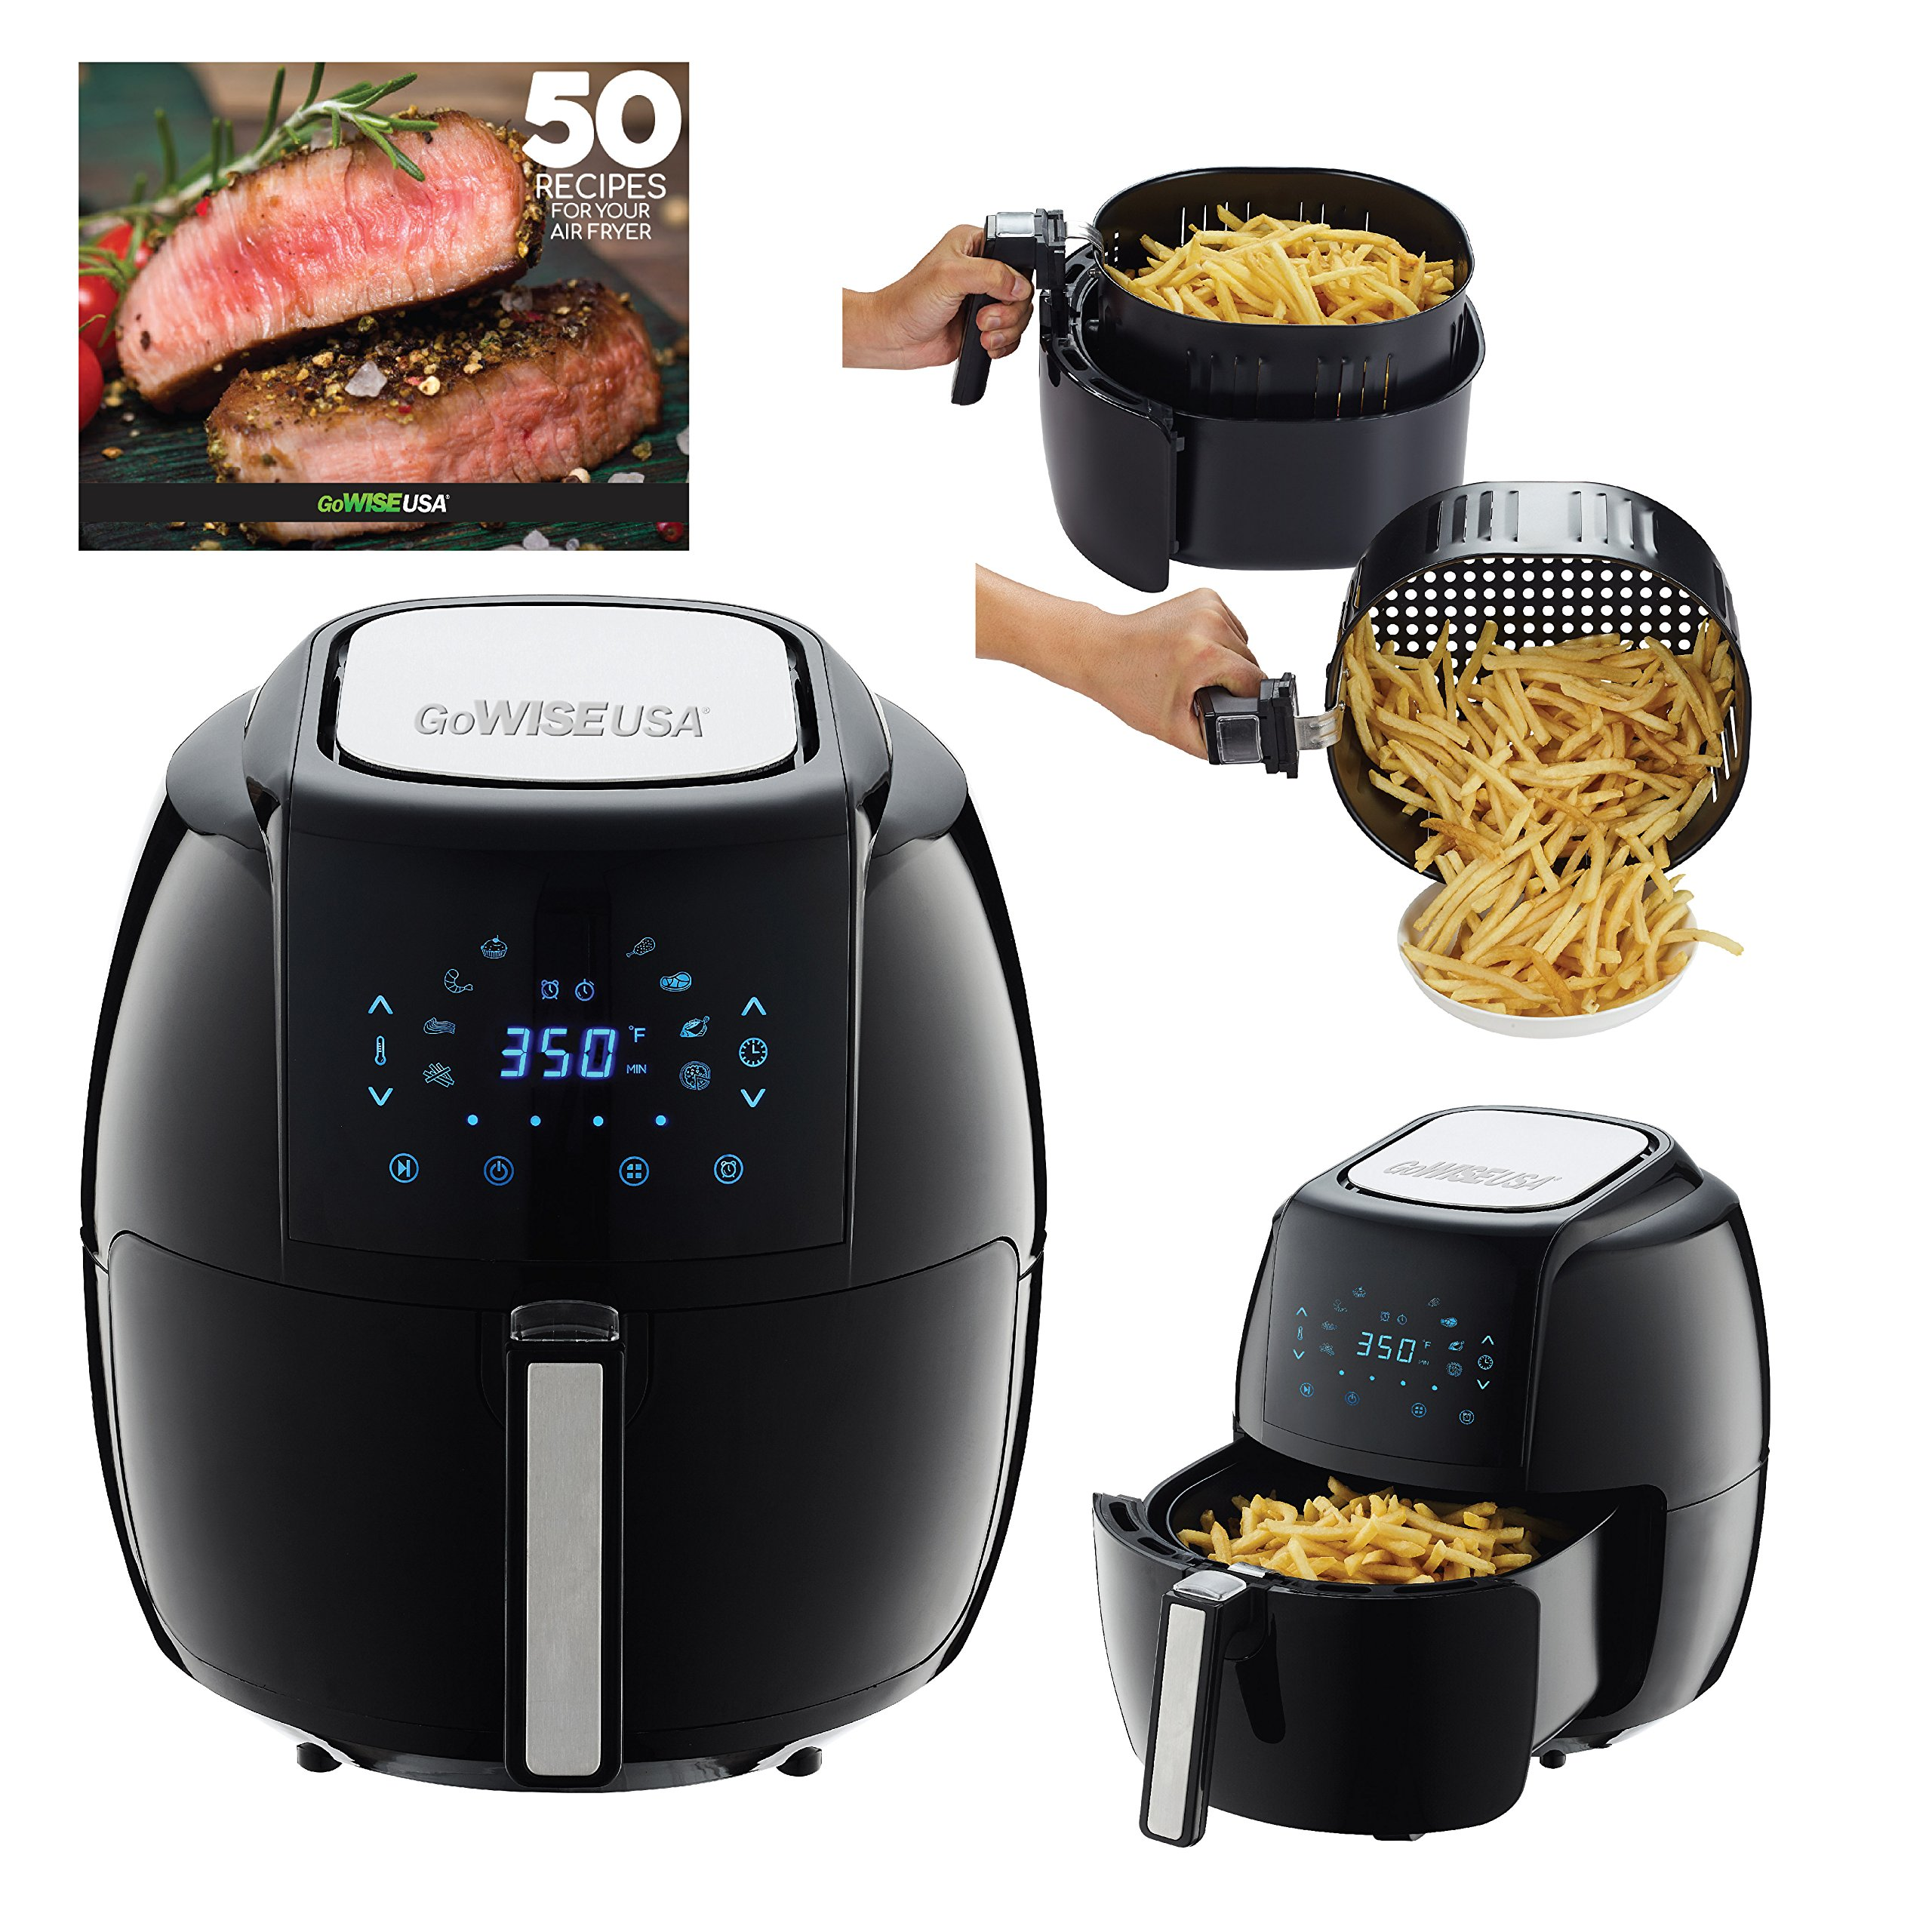 Air Fryer Black Friday deals -  GoWISE USA  1700-Watt 5.8-QT 8-in-1 Digital Air Fryer and 50 Recipes for your Air Fryer Book (Black)